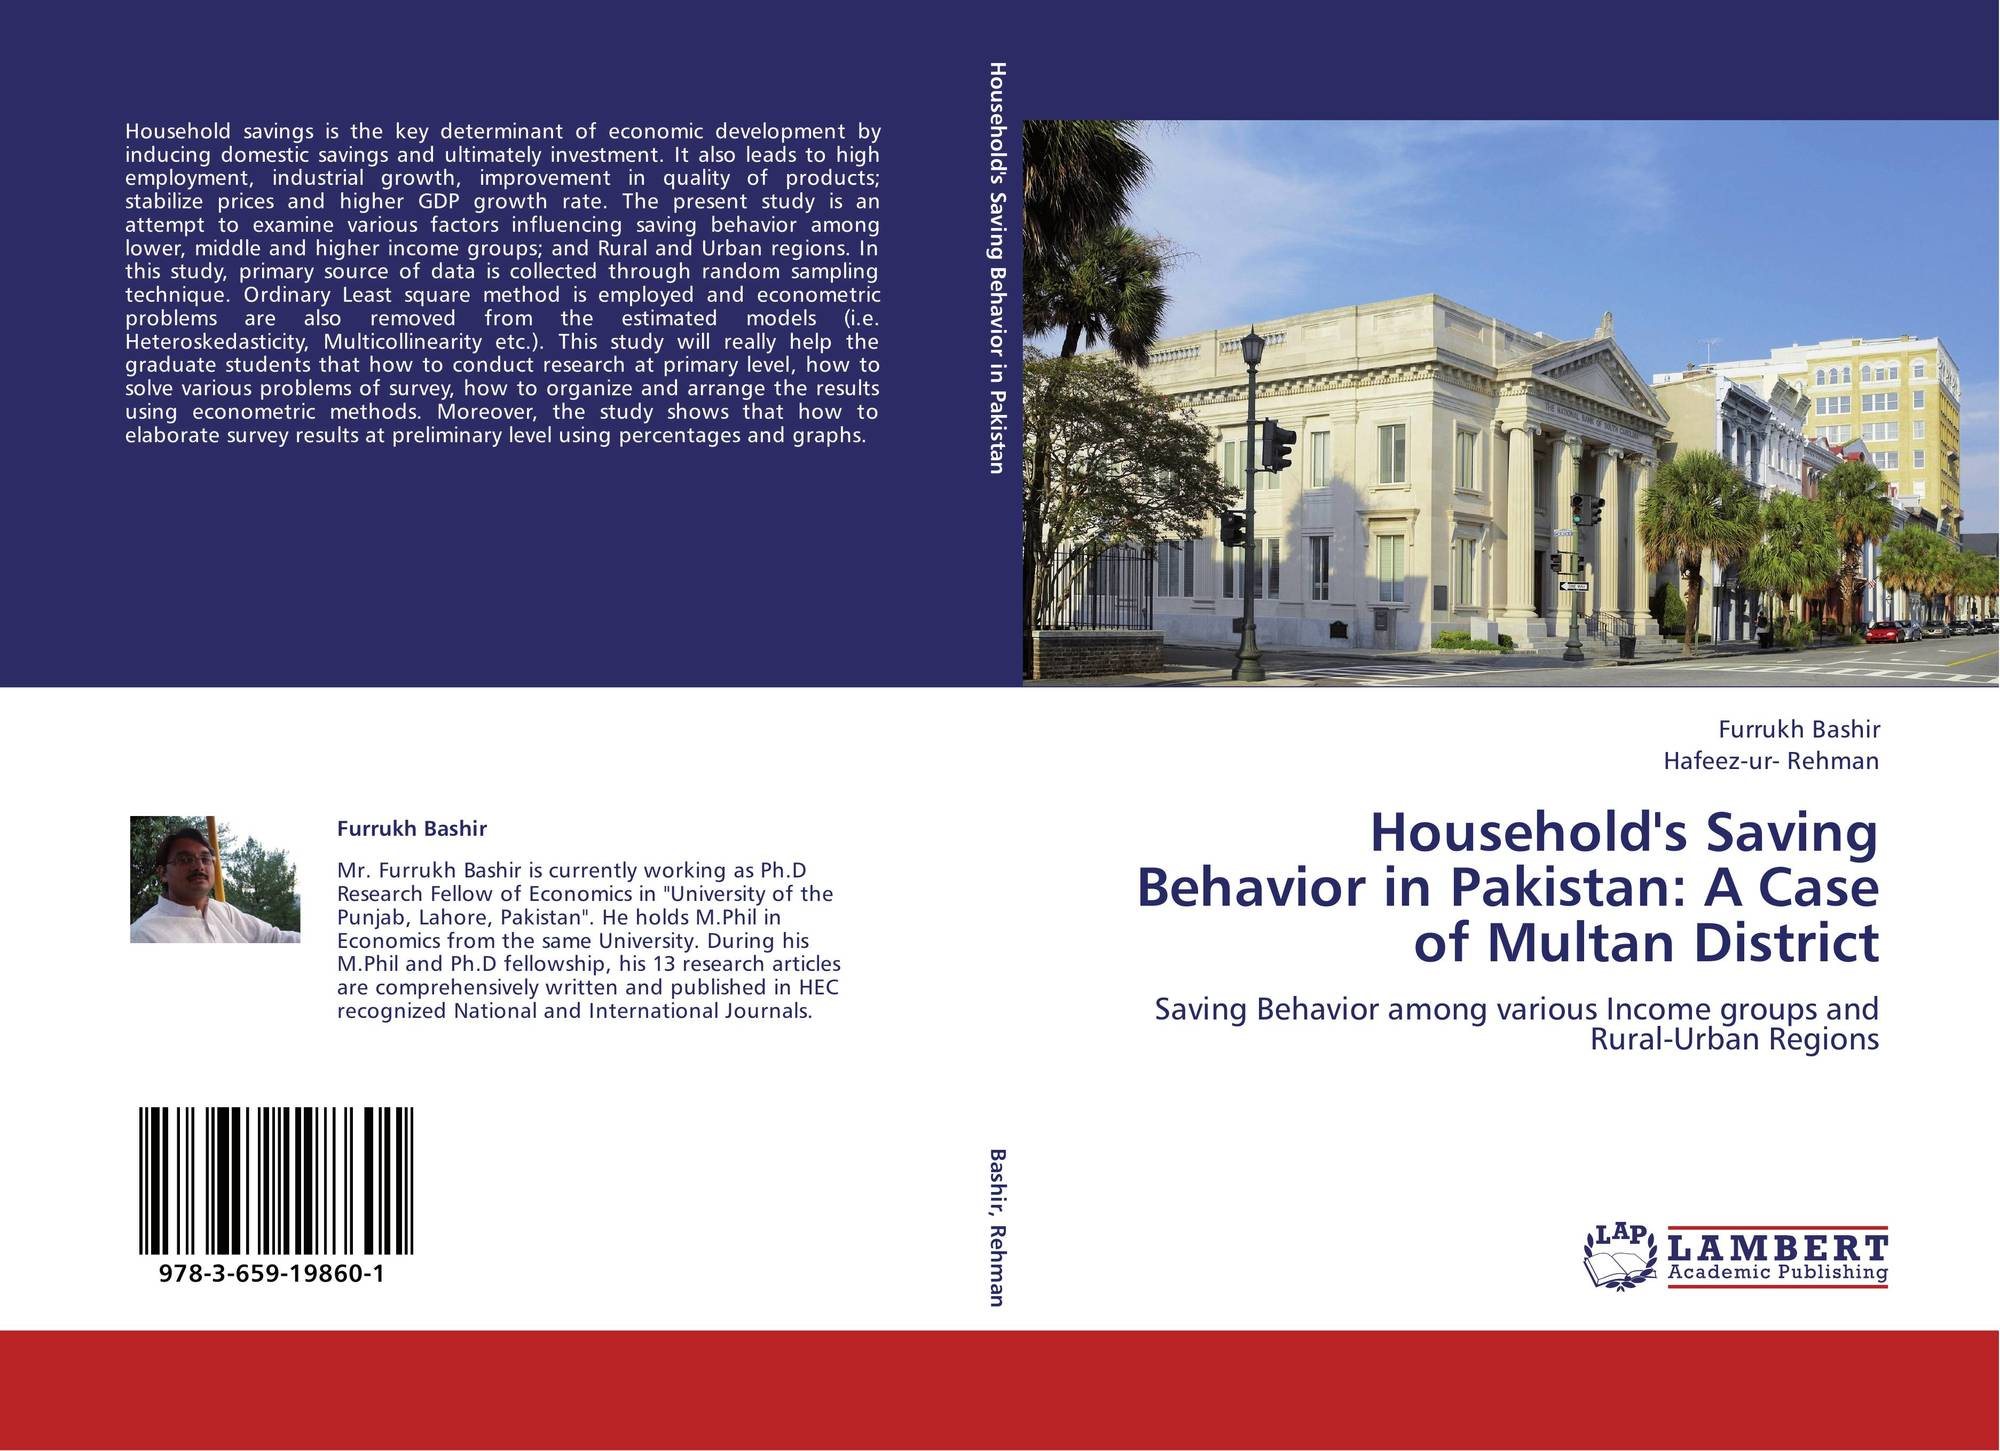 investment behaviour in pakistan Abstract: the objective of the study is to analyze the factors that affect investment behavior in pakistan over the time period 1980-2011 augmented dickey-fuller (adf) is used to check the stationary level of the variables in the model.